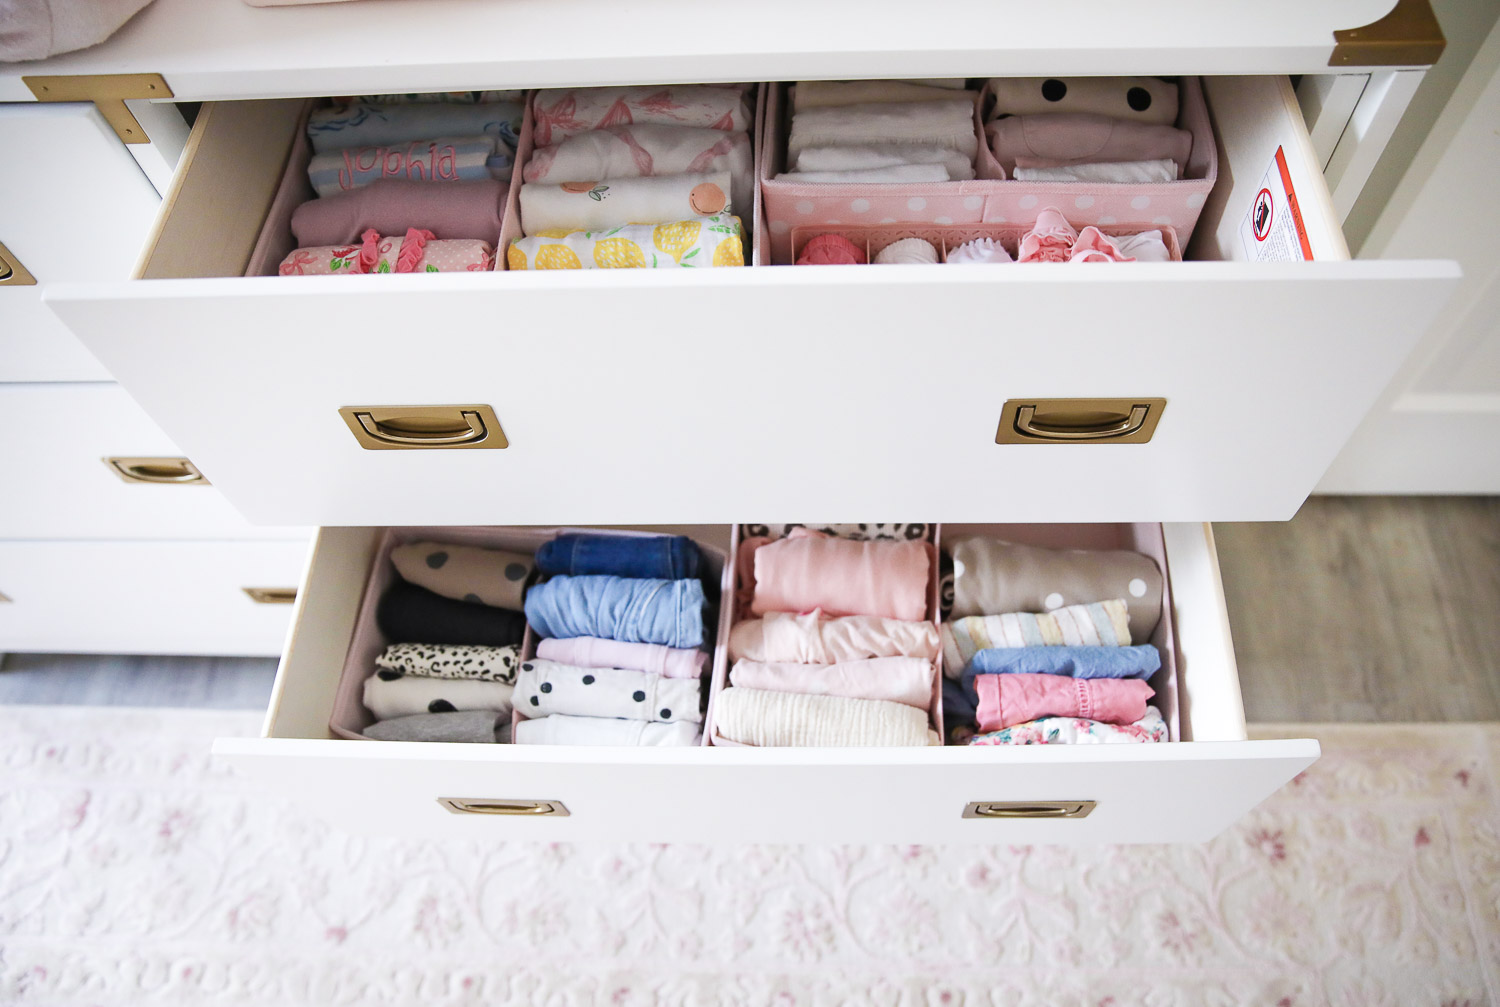 walmart kids home organization must haves, playroom organization ideas, emily gemma, the sweetest thing blog | Playroom Organization by popular US life and style blog, The Sweetest Thing: image of a dresser drawer organized with Walmart mDesign Fabric Child/Kids Drawer Organizer and Walmart youlaike 5 Cells Plastic Organizer Storage Box Tie Bra Socks Drawer Cosmetic Divider.